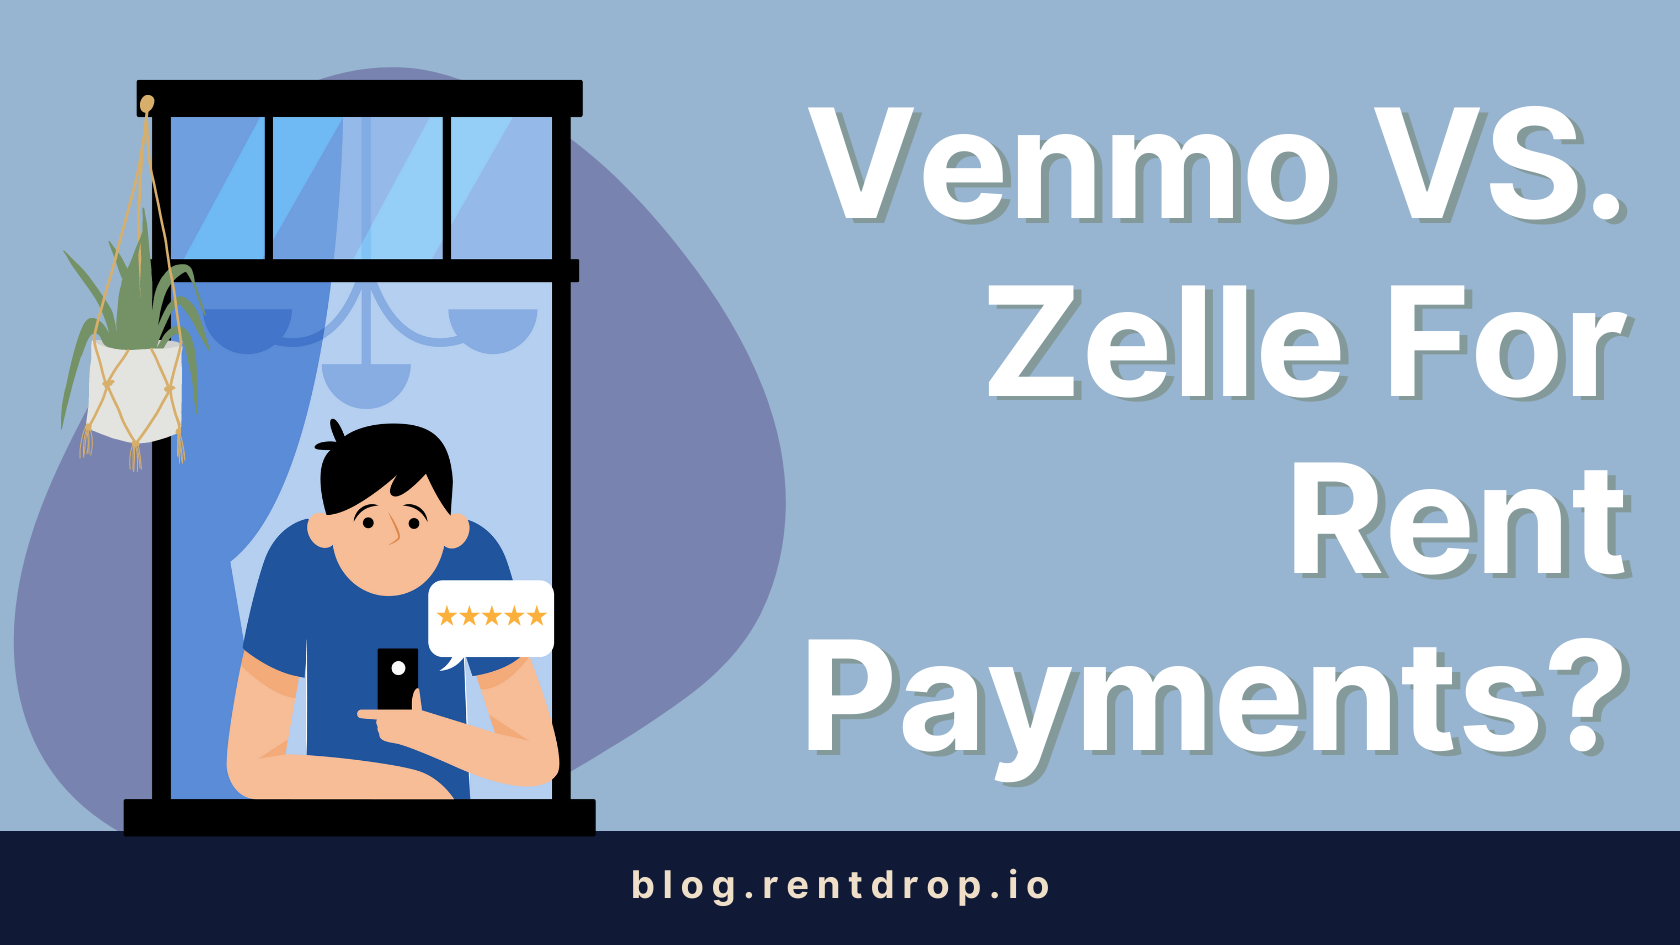 image of Venmo VS. Zelle For Rent Payments? Why You Should Not Use Either One